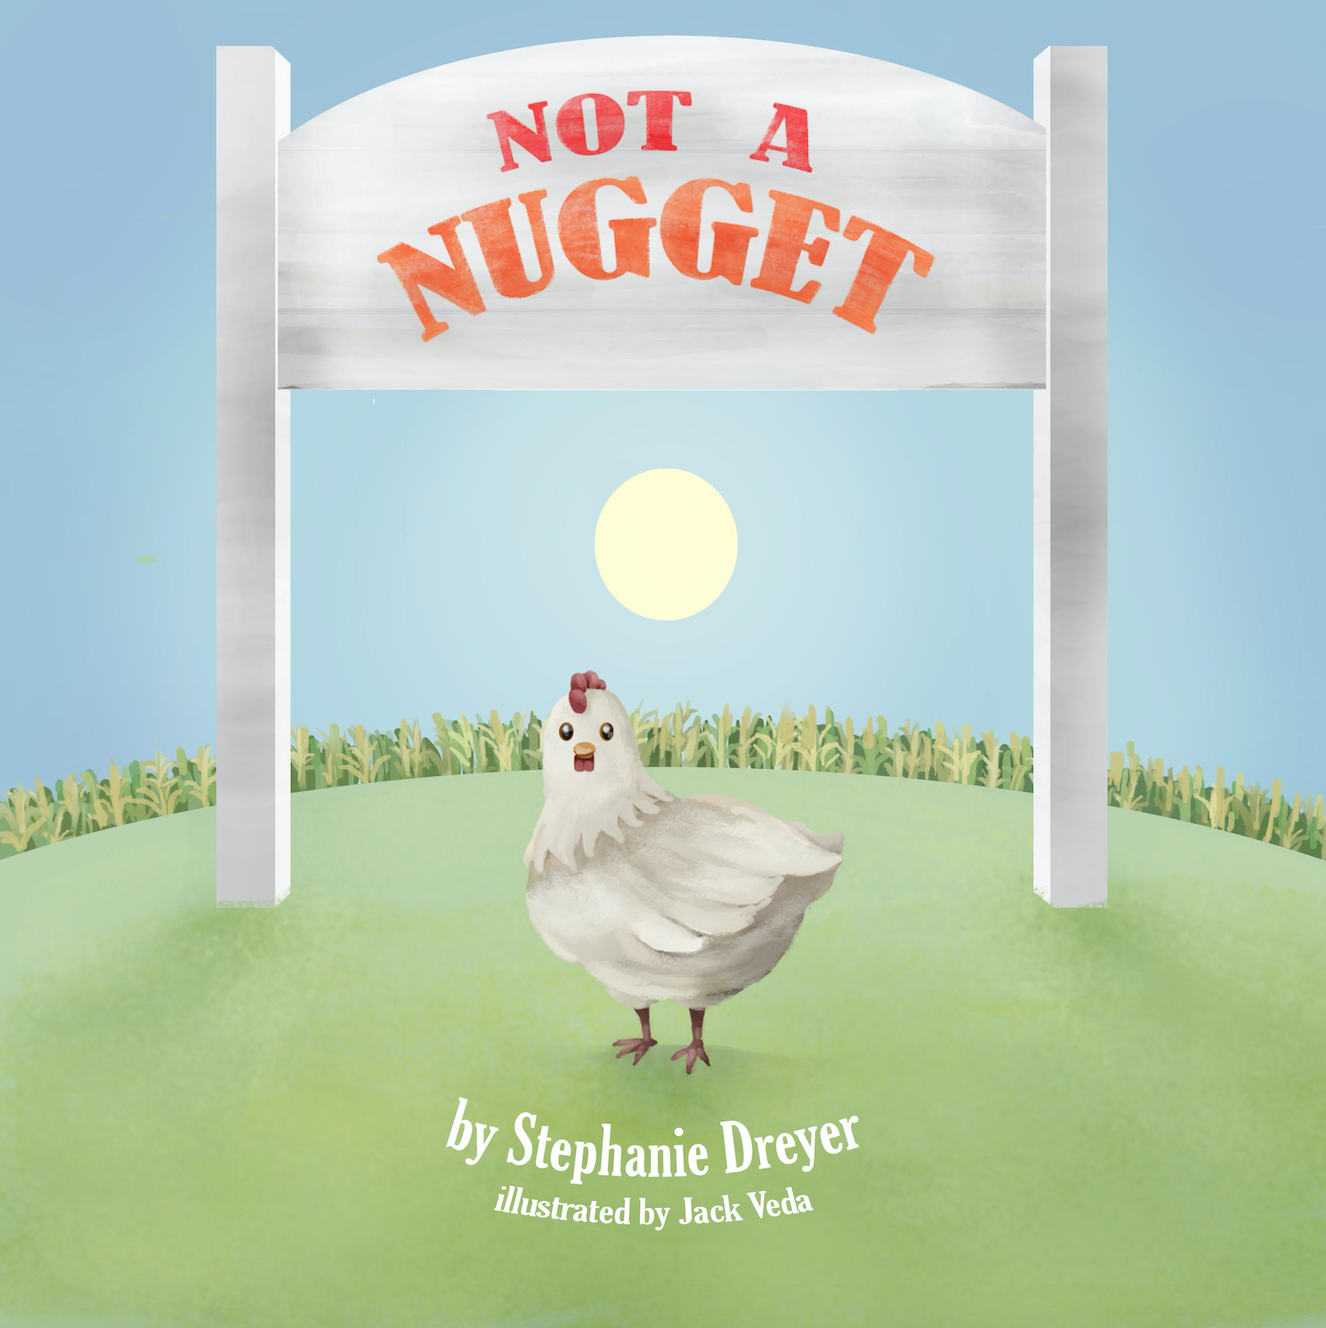 Not A Nugget book